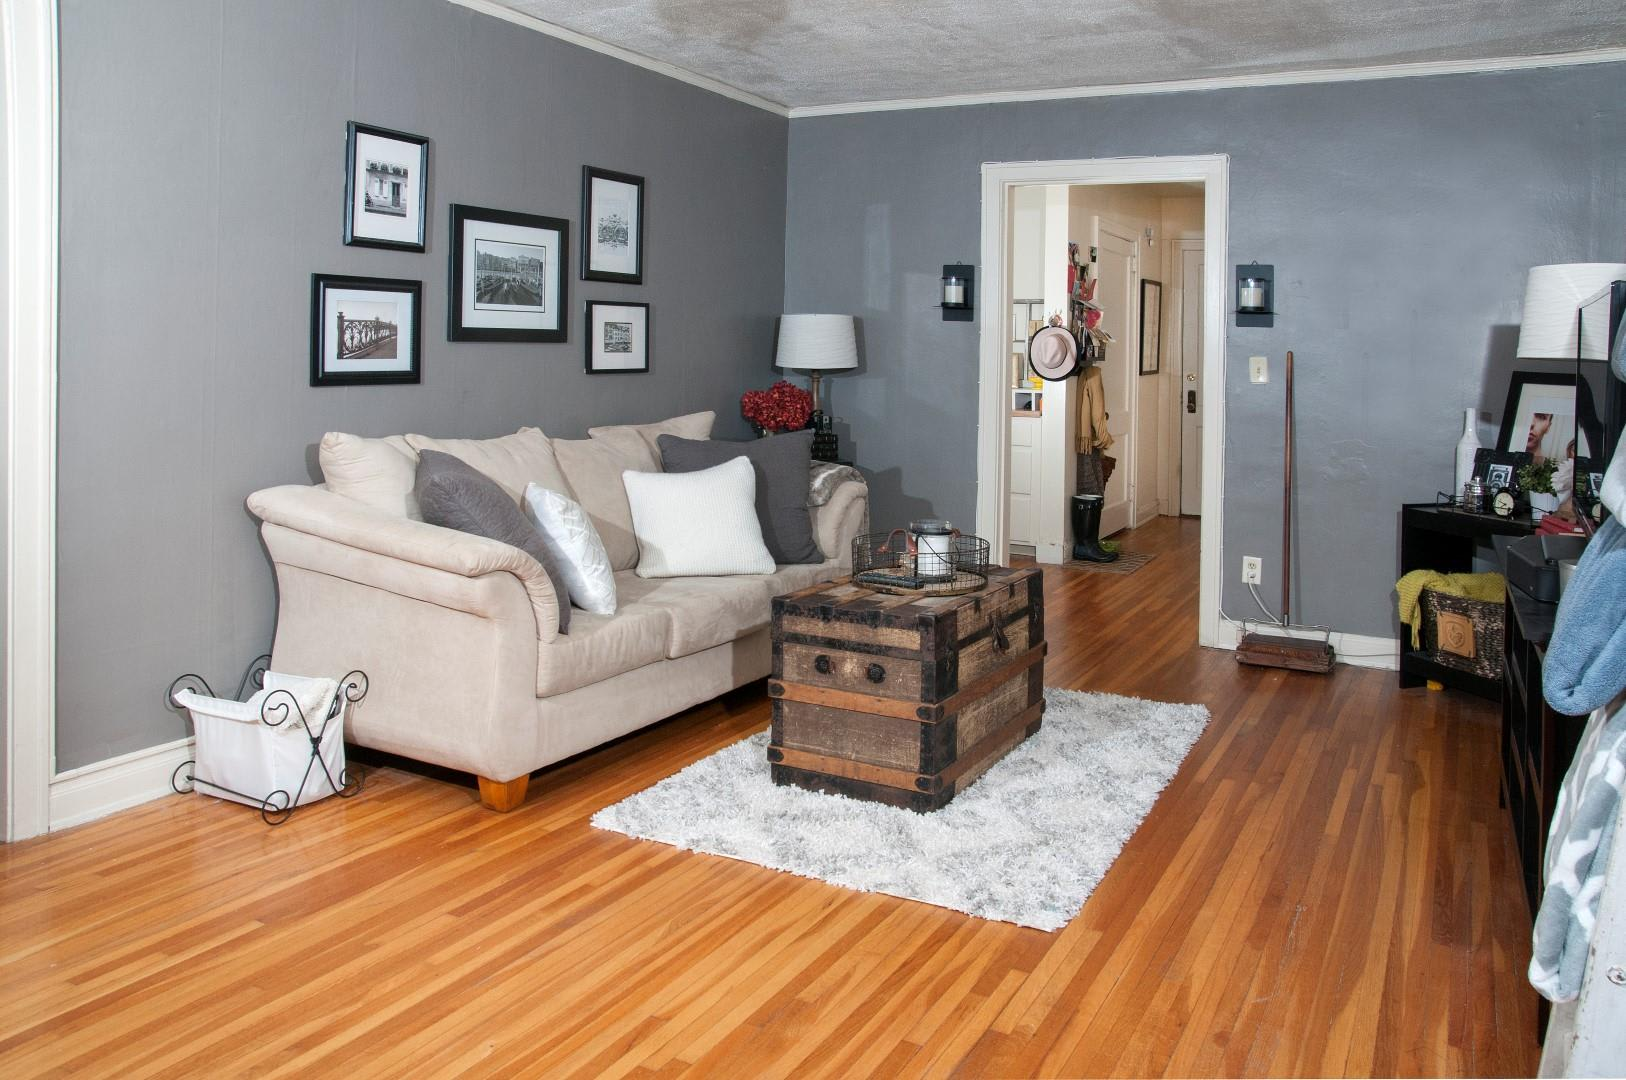 Spacious Living Room with Light Hardwood Floors at 3500 Dupont